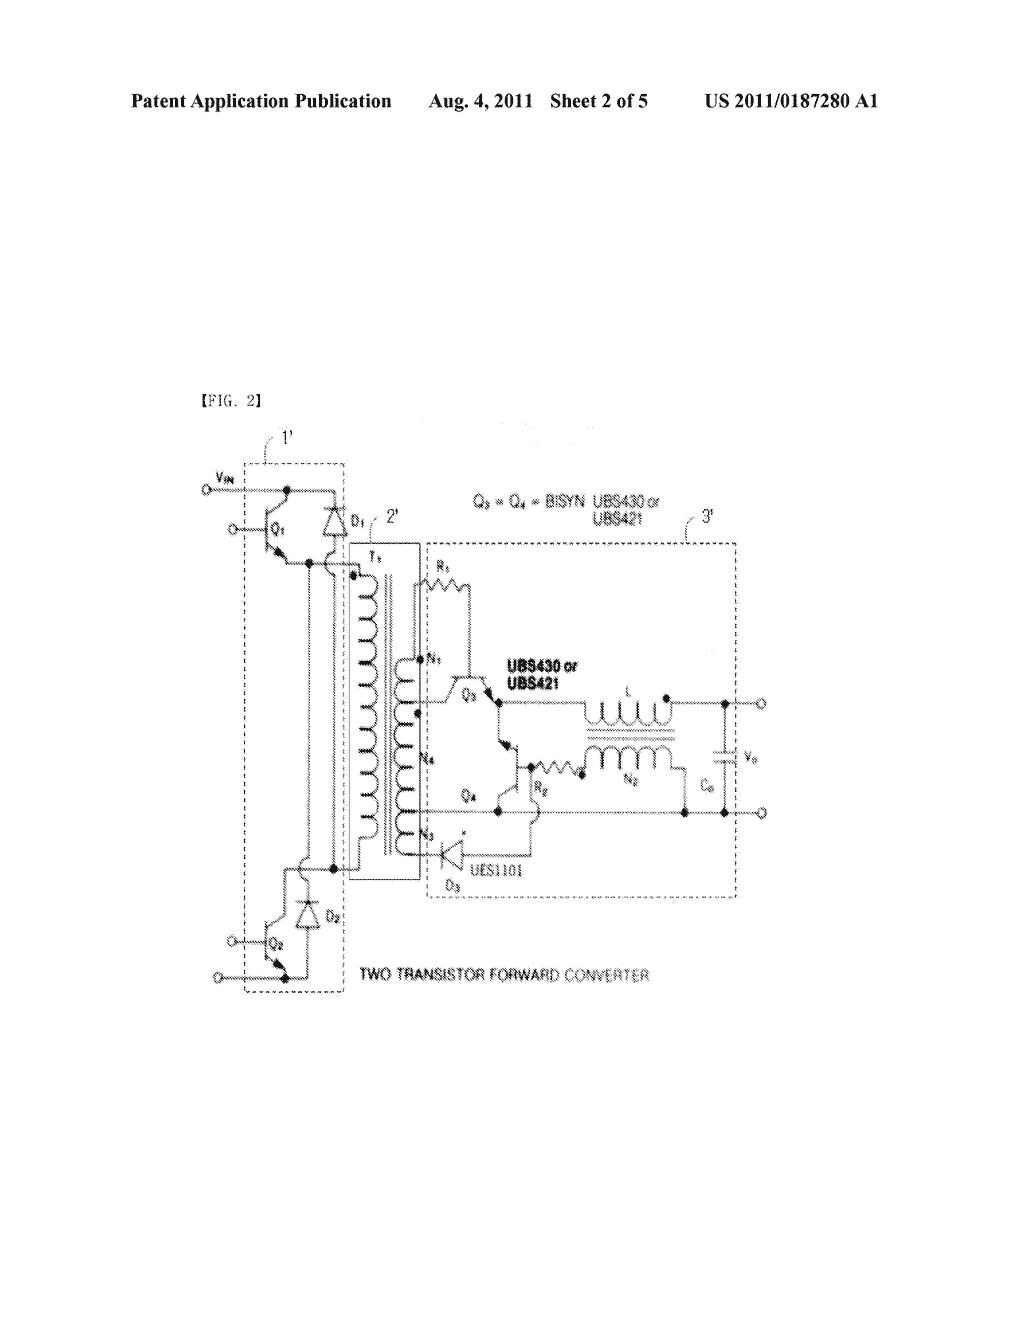 Primary Drive Synchronous High Speed Switching Rectifying Circuit Half Switched Schematic Wiring Diagram For Llc Bridge Power Converter Driving Led And Image 03